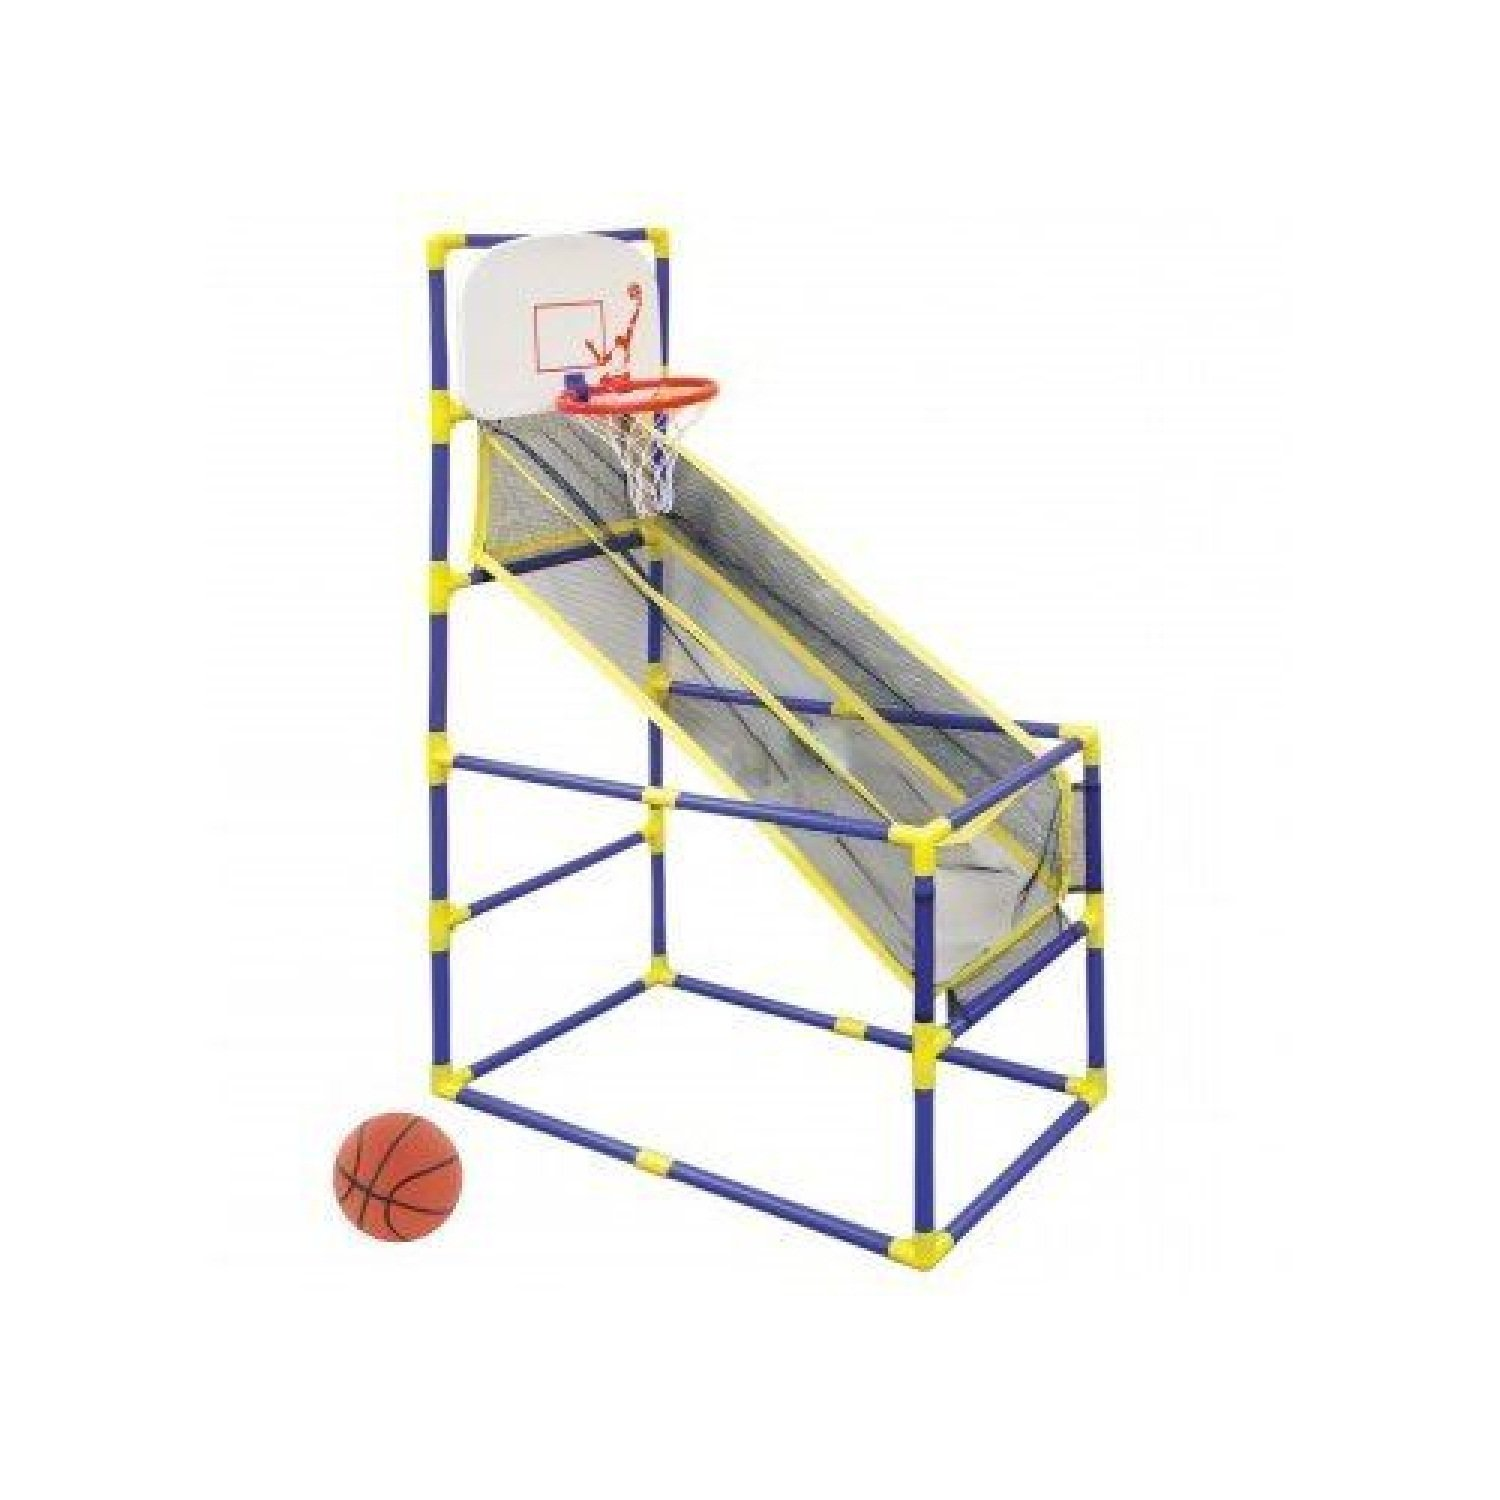 Super Basketball game Arcade-Style Basketball Hoops Game